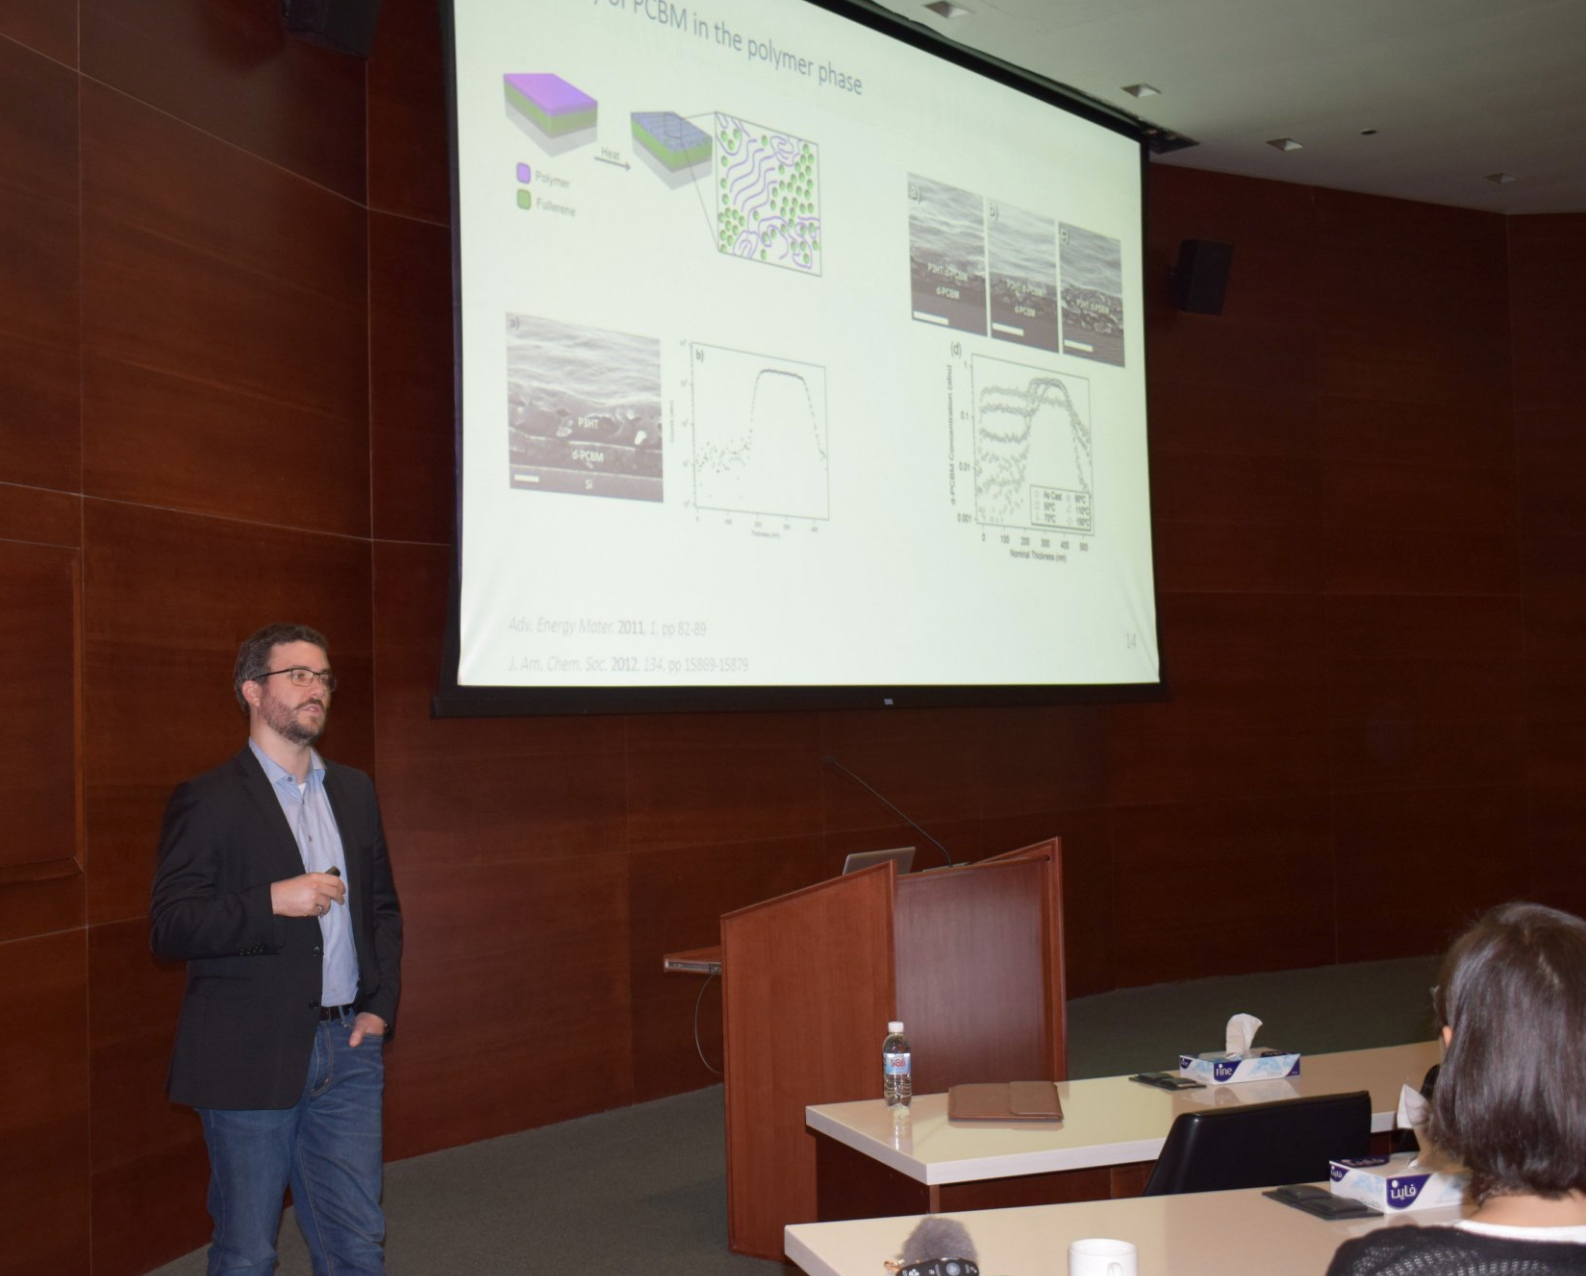 Dr.Bob Schroeder KSC Seminar - 11/4/17It was a pleasure to host Prof.Schroeder from Queen Mary University of London who provided an informative KSC seminar titled